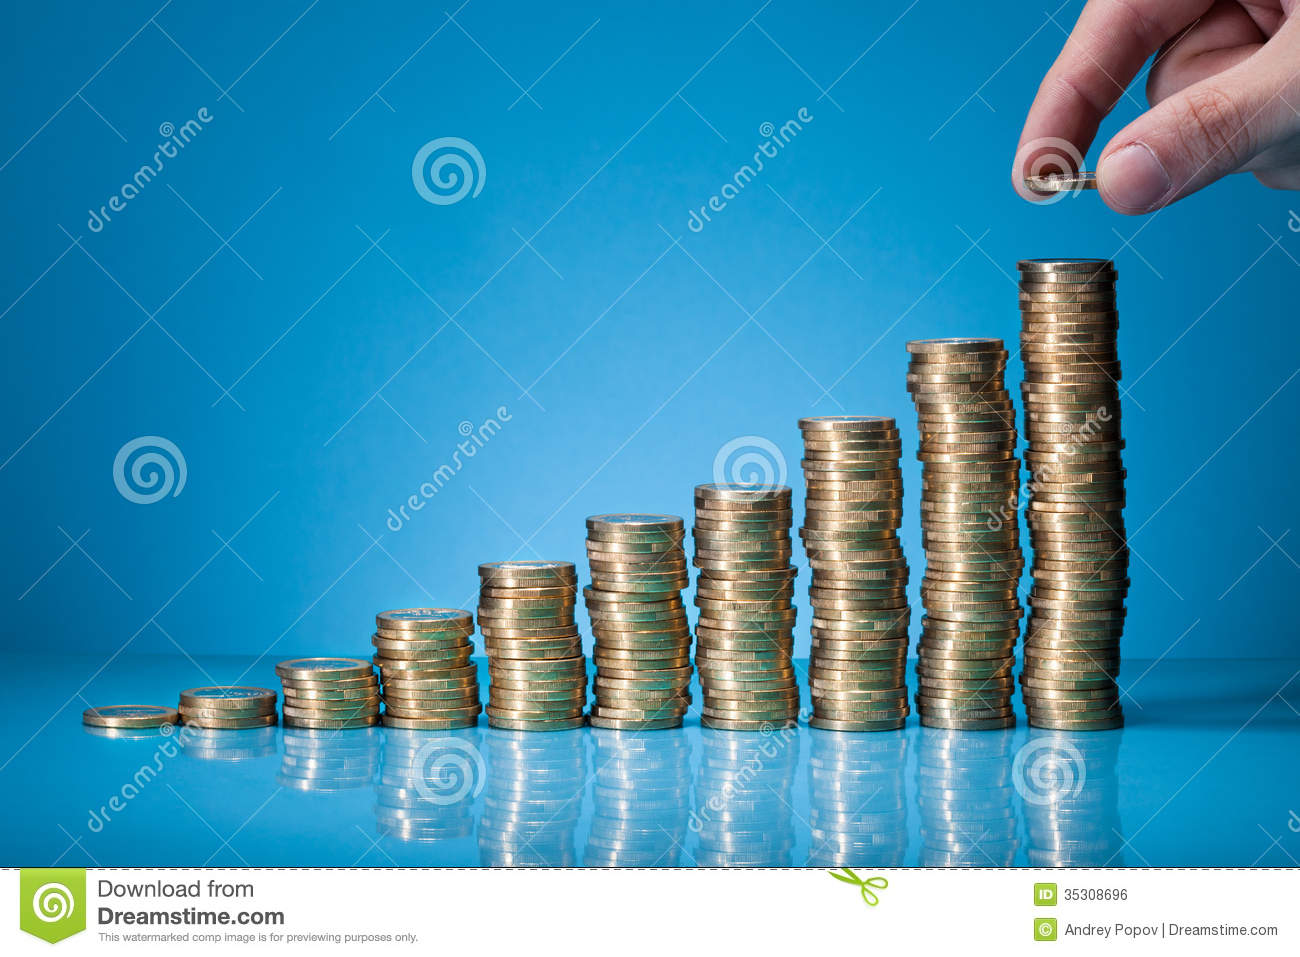 Hand Placing Coin On Stack Of Coins Stock Photo Image Of Gold